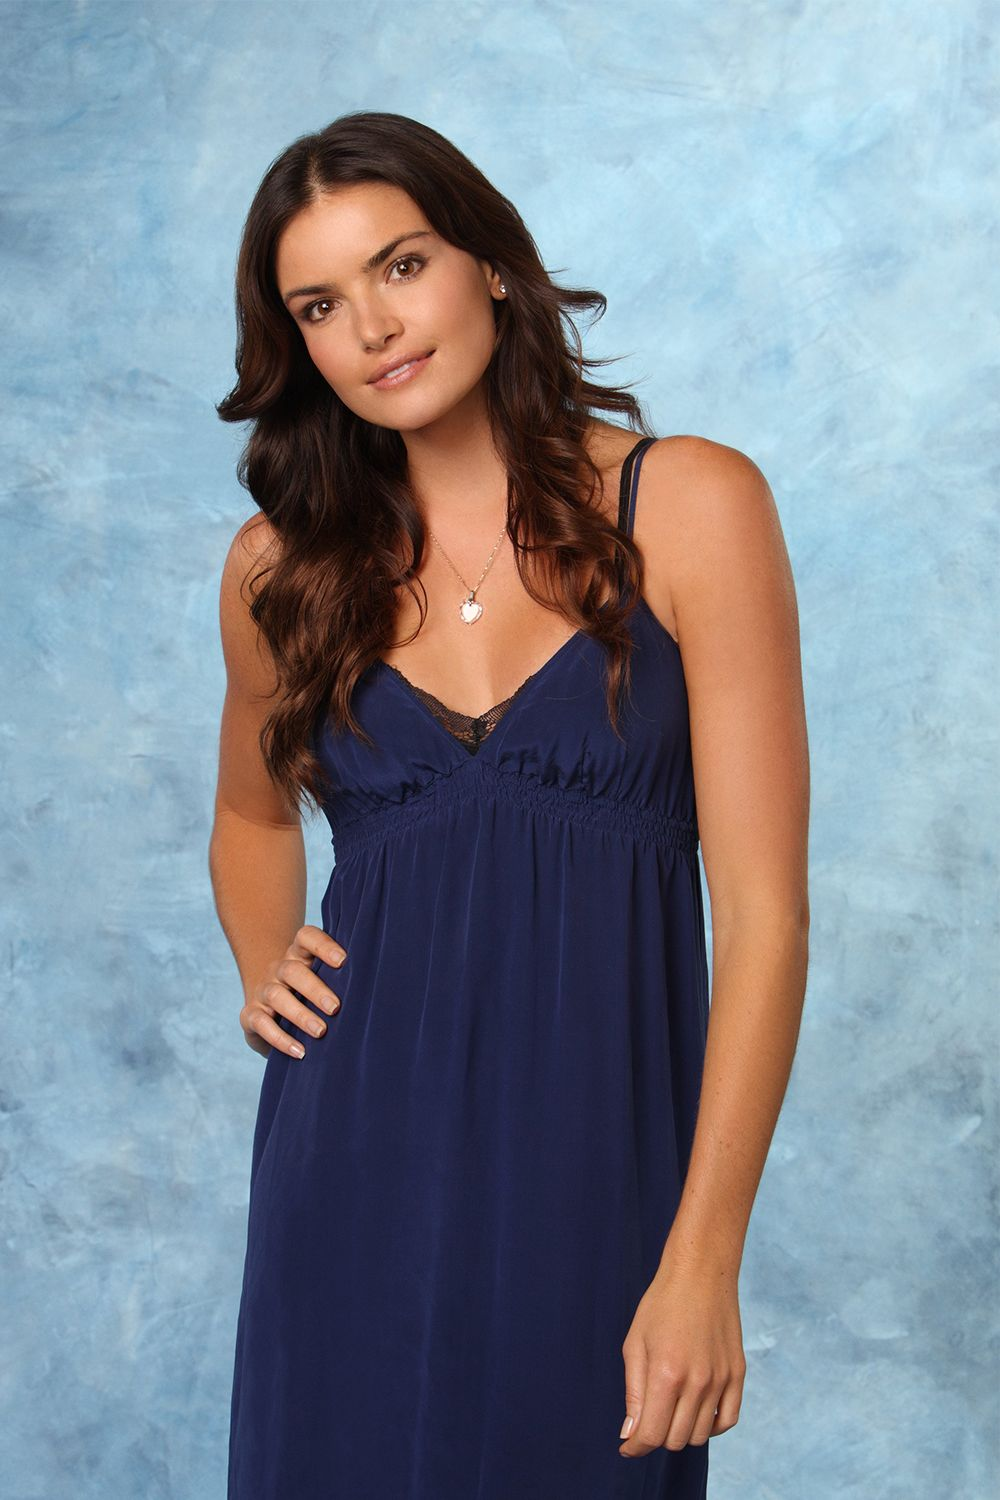 Courtney Robertson ('The Bachelor' Season 16) Bachelor Ben Flajnik proposed to the villain of his season—Courtney Robertson—and fans were not happy about it. When Courtney arrived to the After the Final Rose special, the audience let out loud boos.